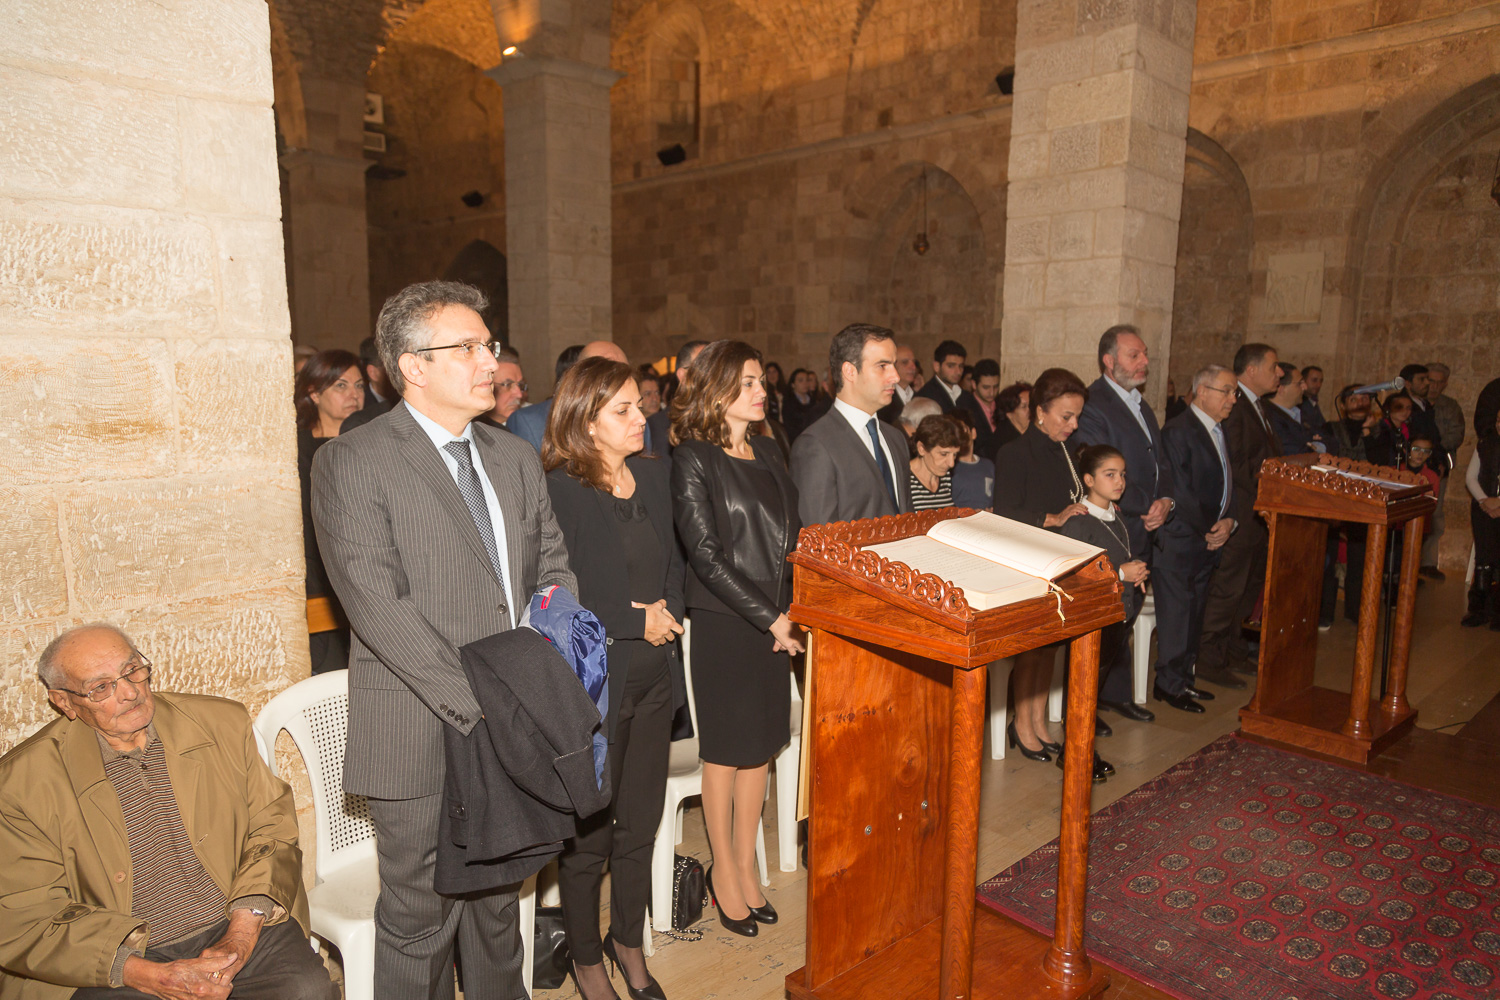 President_Moawad_25th_memorial_mass_Photo_chady_souaid-4